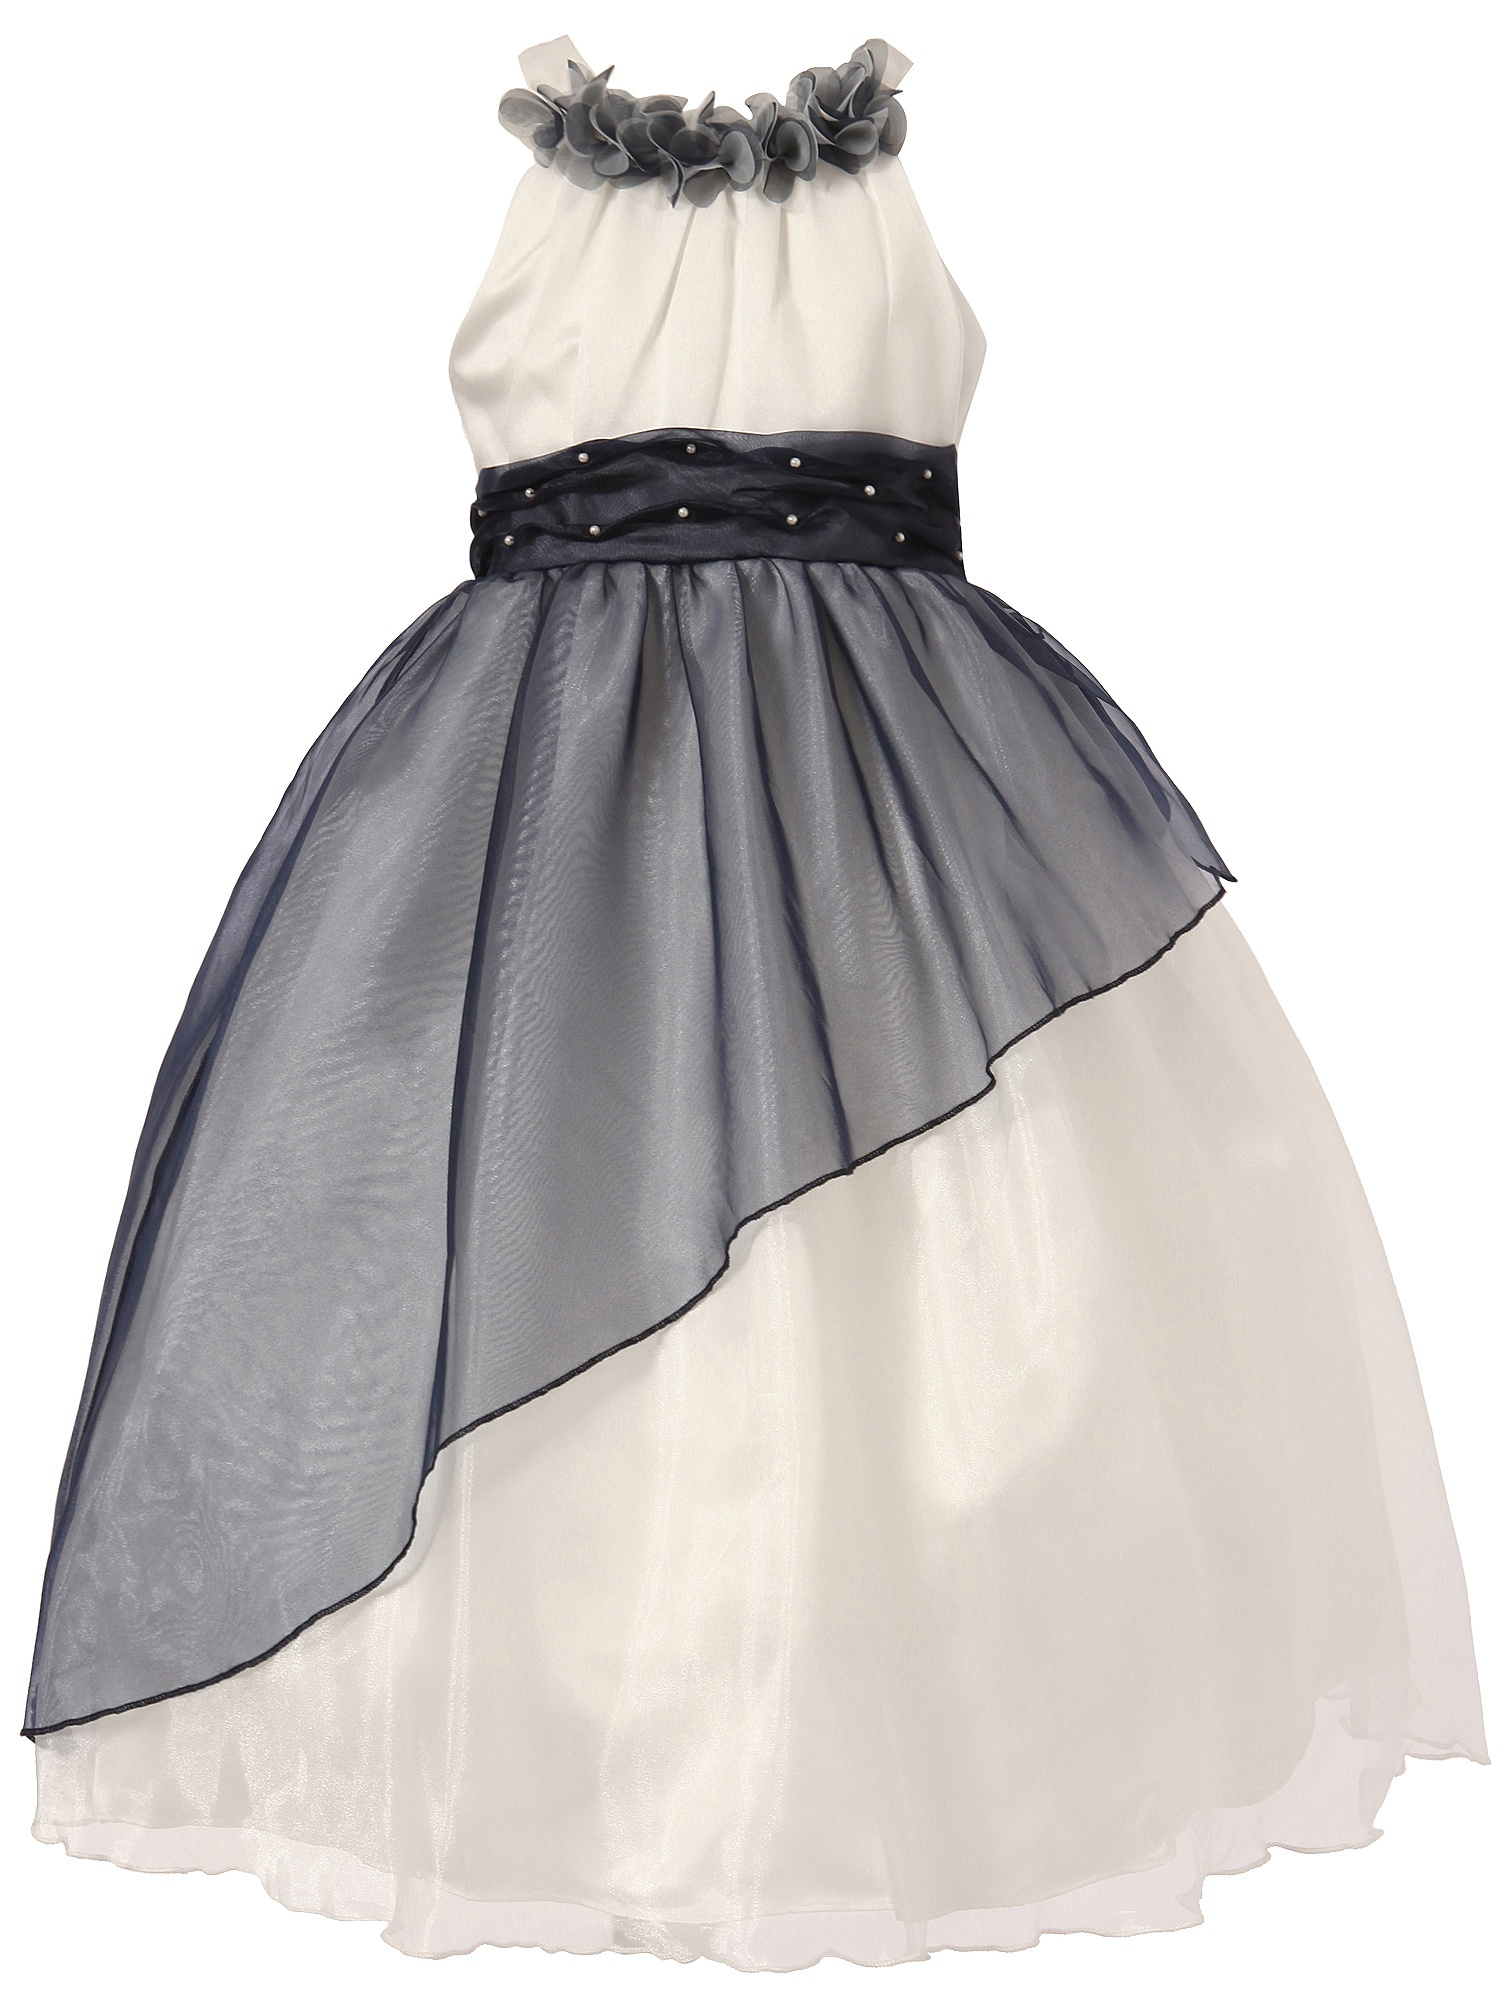 Richie House Little Girls White Blue Tulle Overskirt Pearl Gown 24M